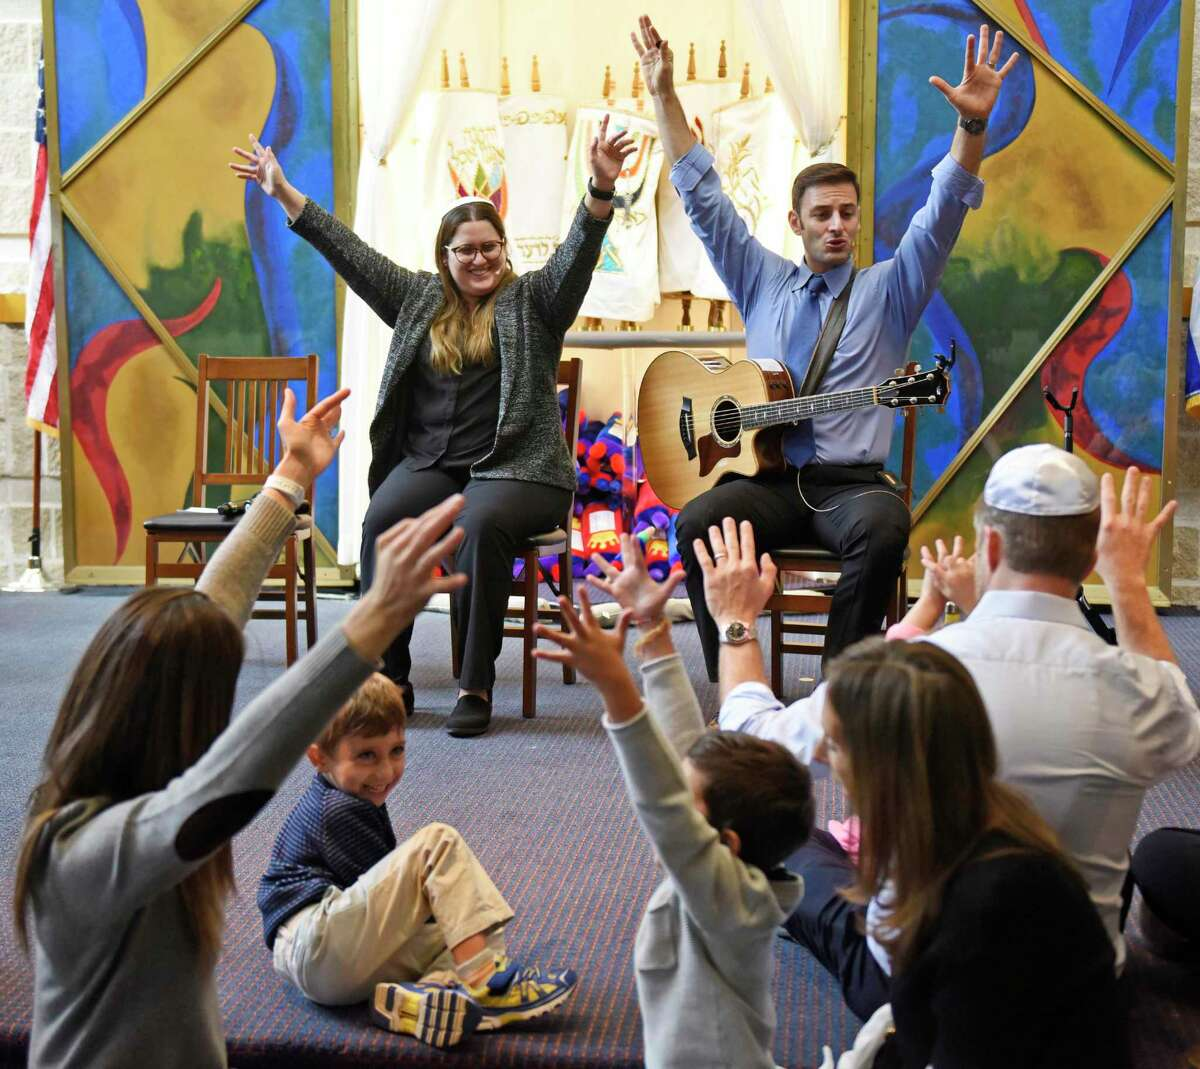 Rabbi Chaya Bender and musician Sheldon Low lead the Tot Rosh Hashanah service at Temple Sholom in Greenwich, Conn. Monday, Sept. 30, 2019. The program featured many fun singalongs for young children and their parents to celebrate the Jewish New Year.